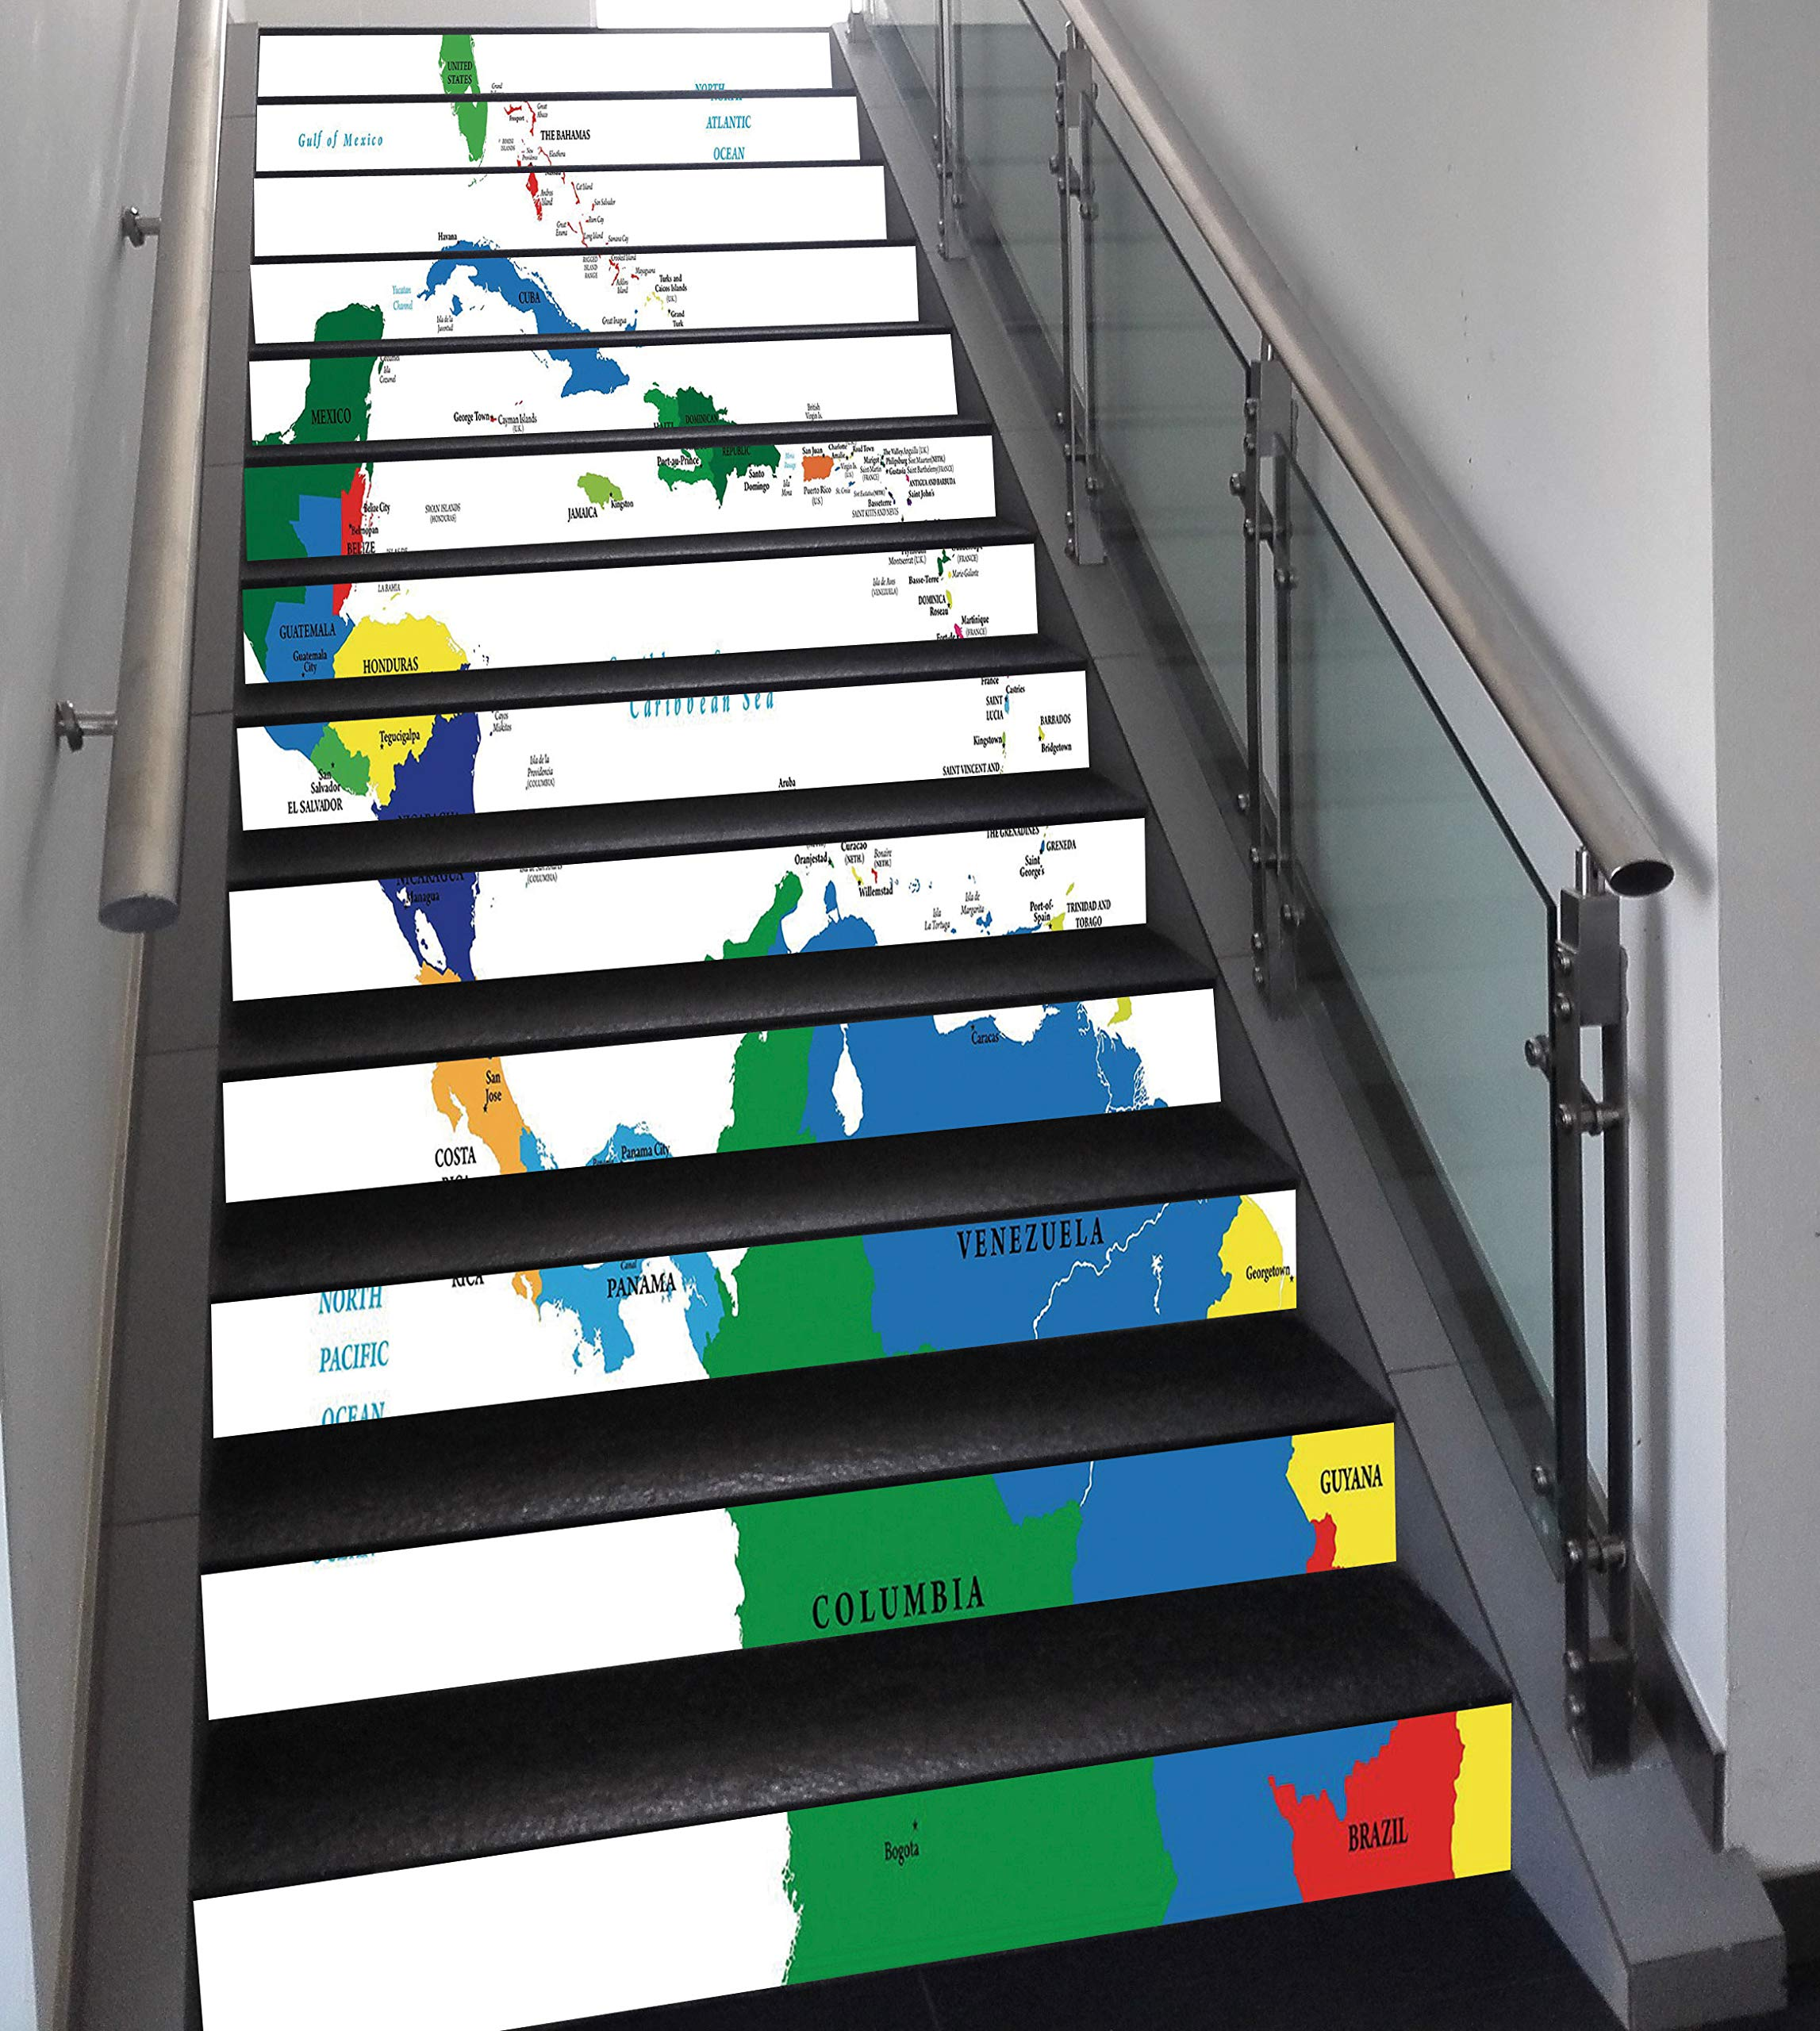 Stair Stickers Wall Stickers,13 PCS Self-adhesive,Map,Central America and the Caribbean Islands Map Countries Cities Names Regions Locations,Multicolor,Stair Riser Decal for Living Room, Hall, Kids Ro